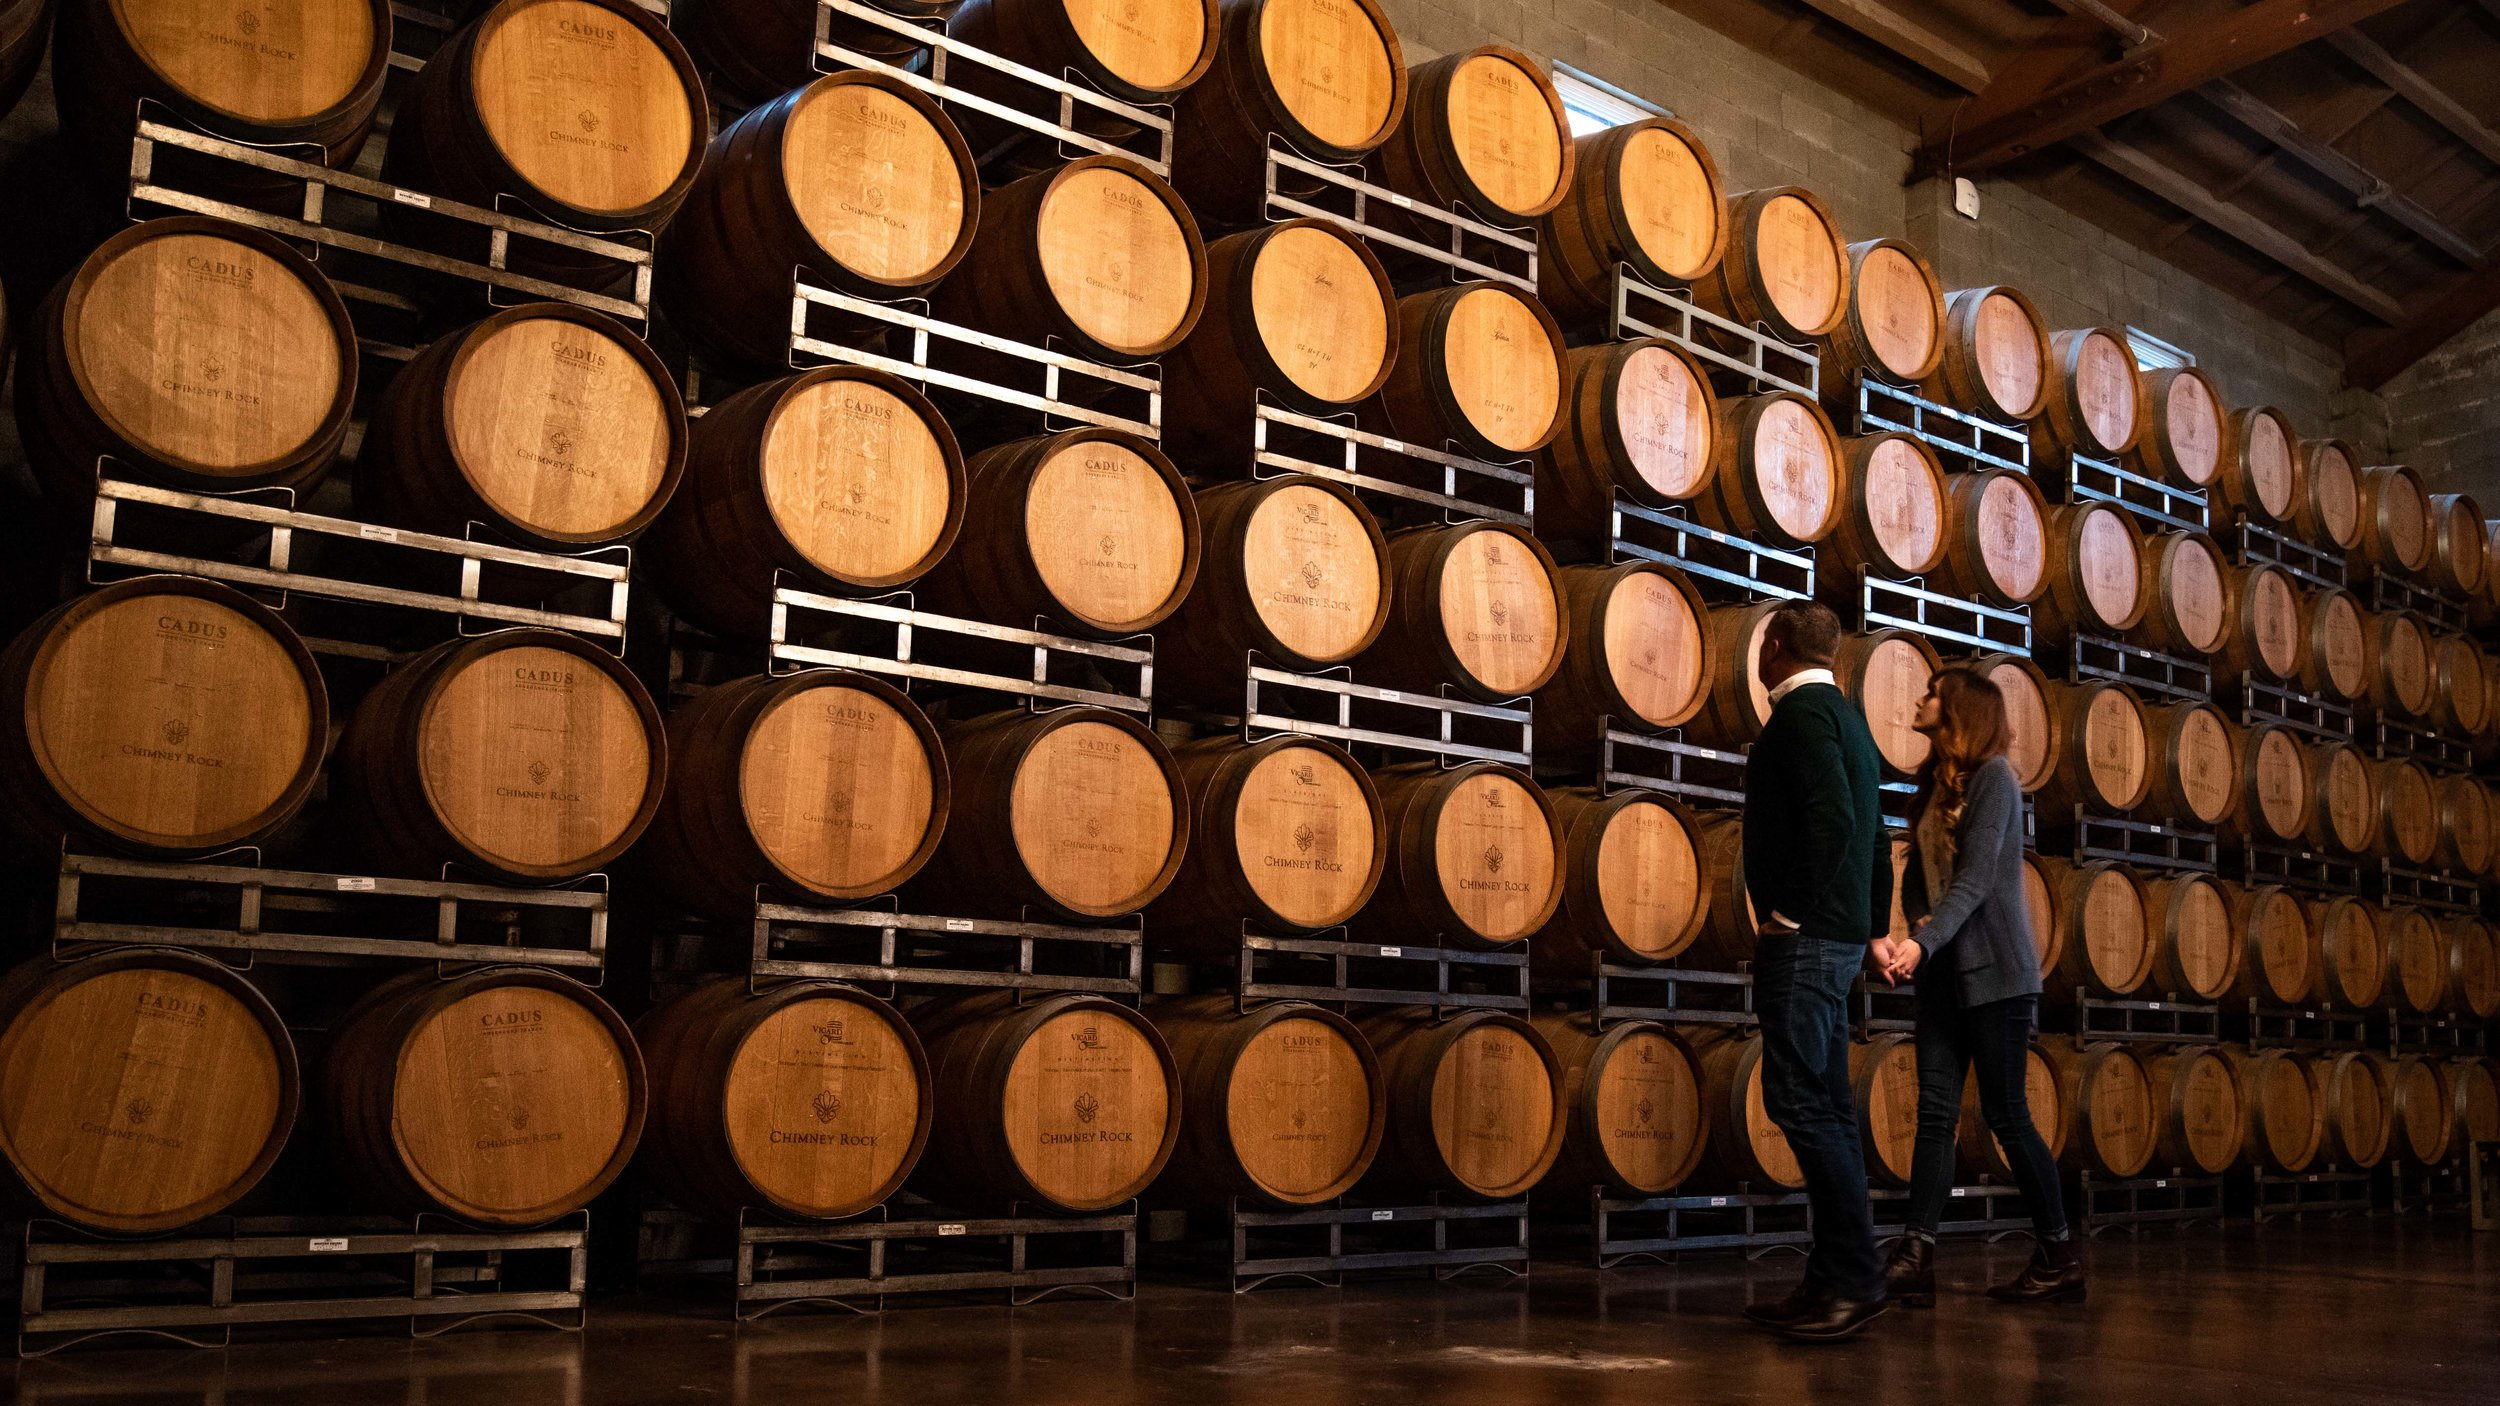 The barrel room.